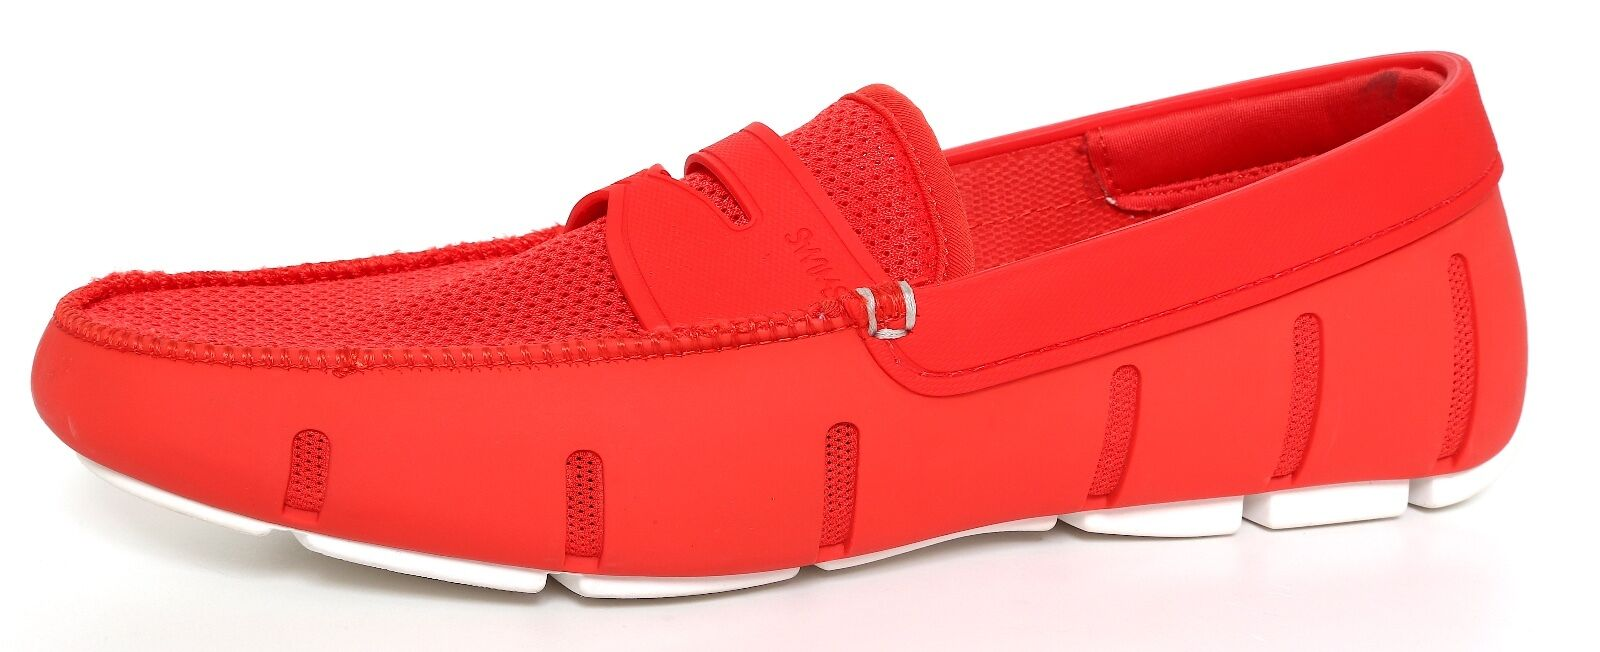 Swims Moc Toe Textured Penny Loafers Red Men Sz 7 3192